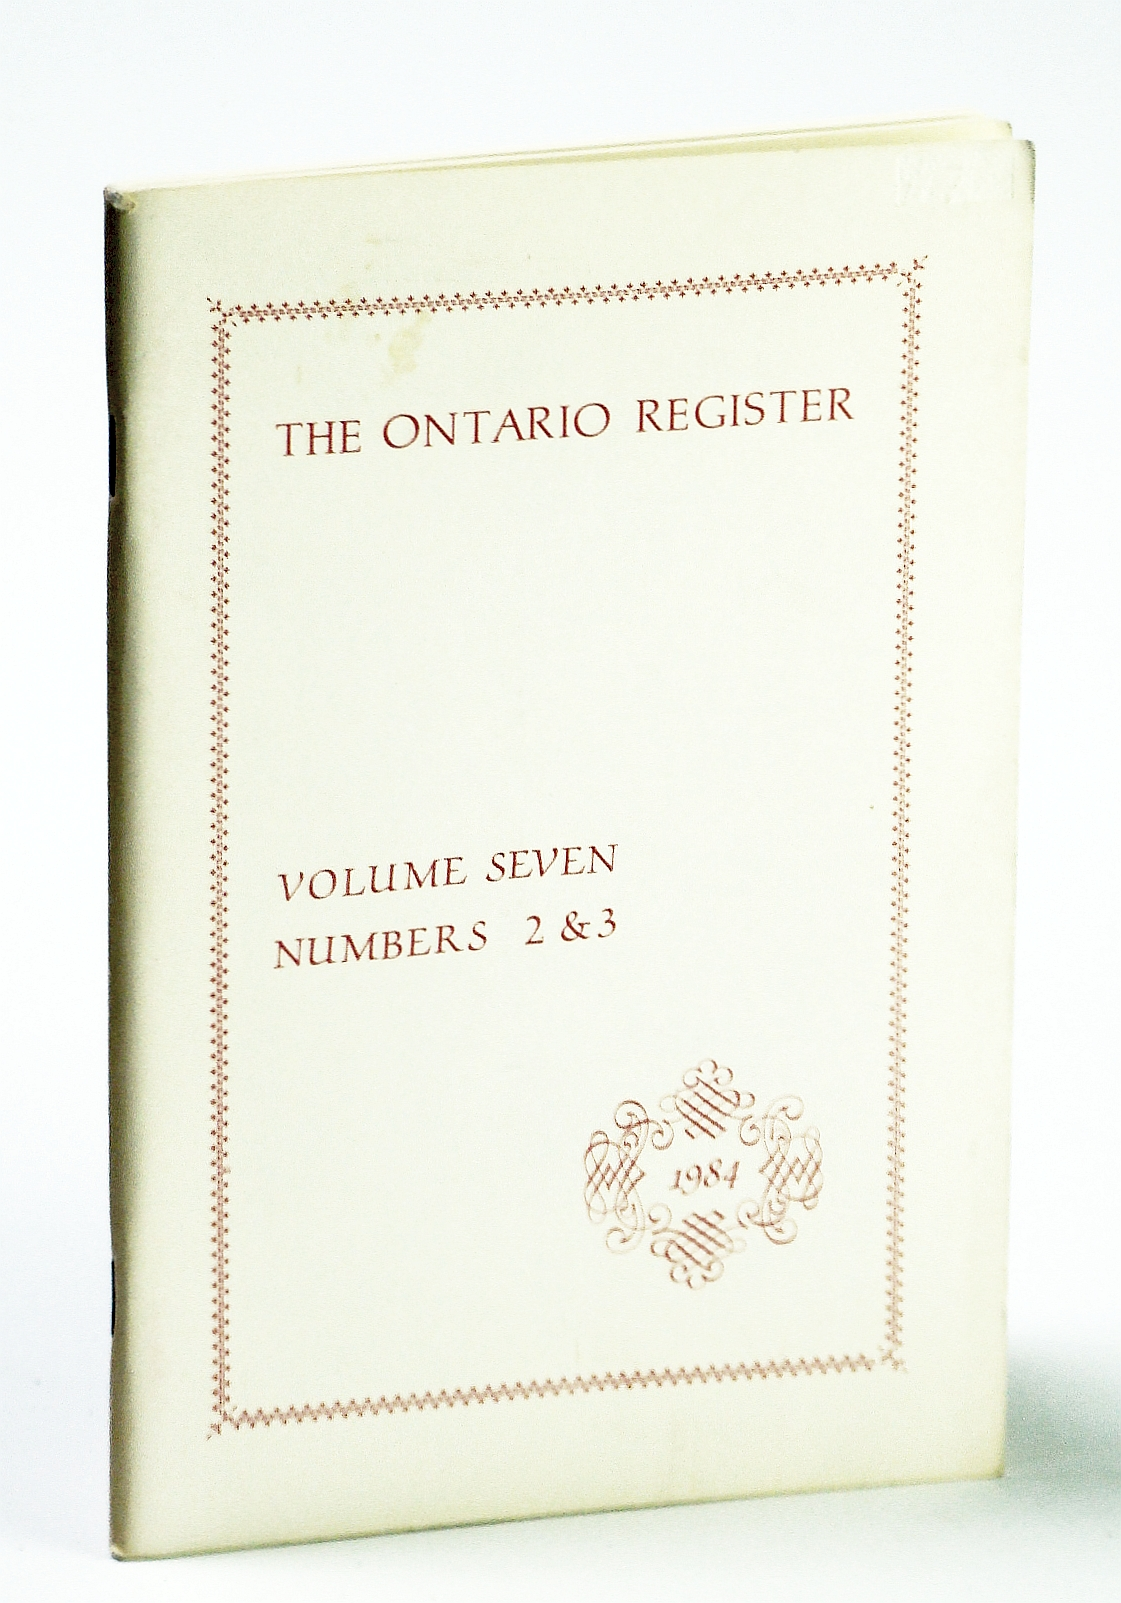 Image for The Ontario Register, Volume Seven (7), Numbers 2 & 3, 1984